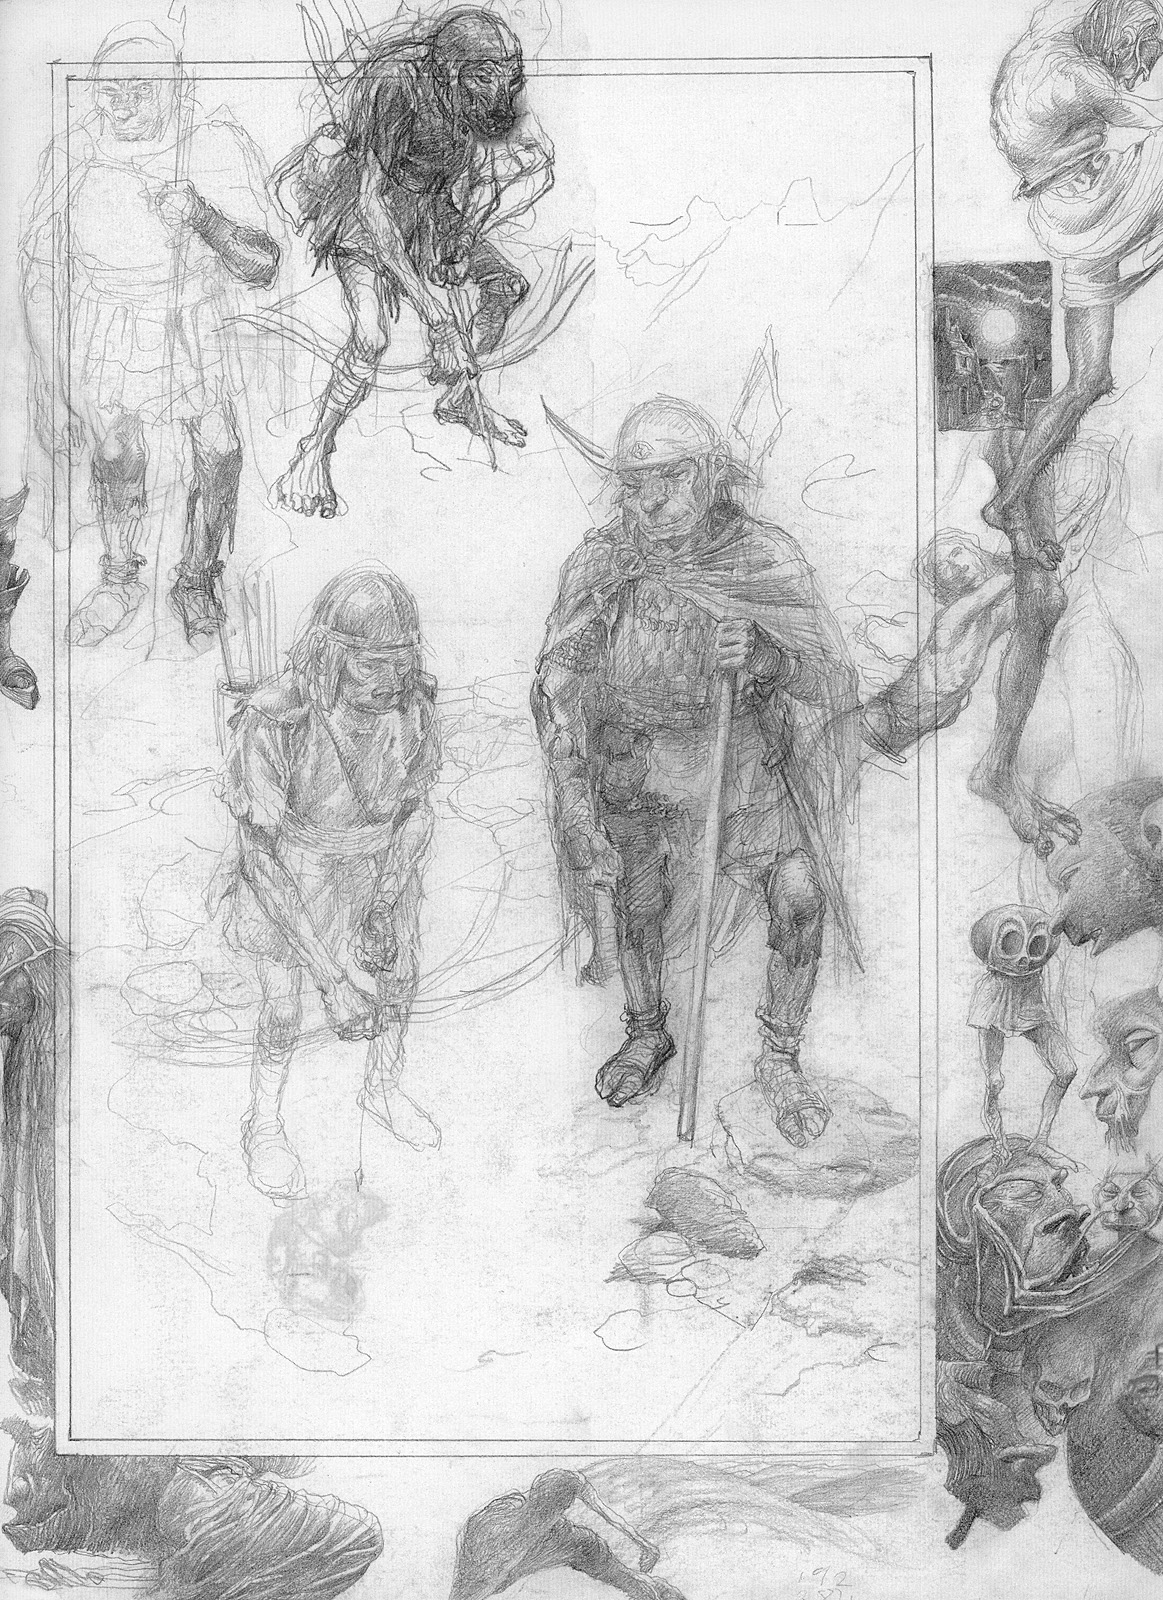 Alan Lee The Lord Of Rings Sketchbook 18 Cirith Ungol08